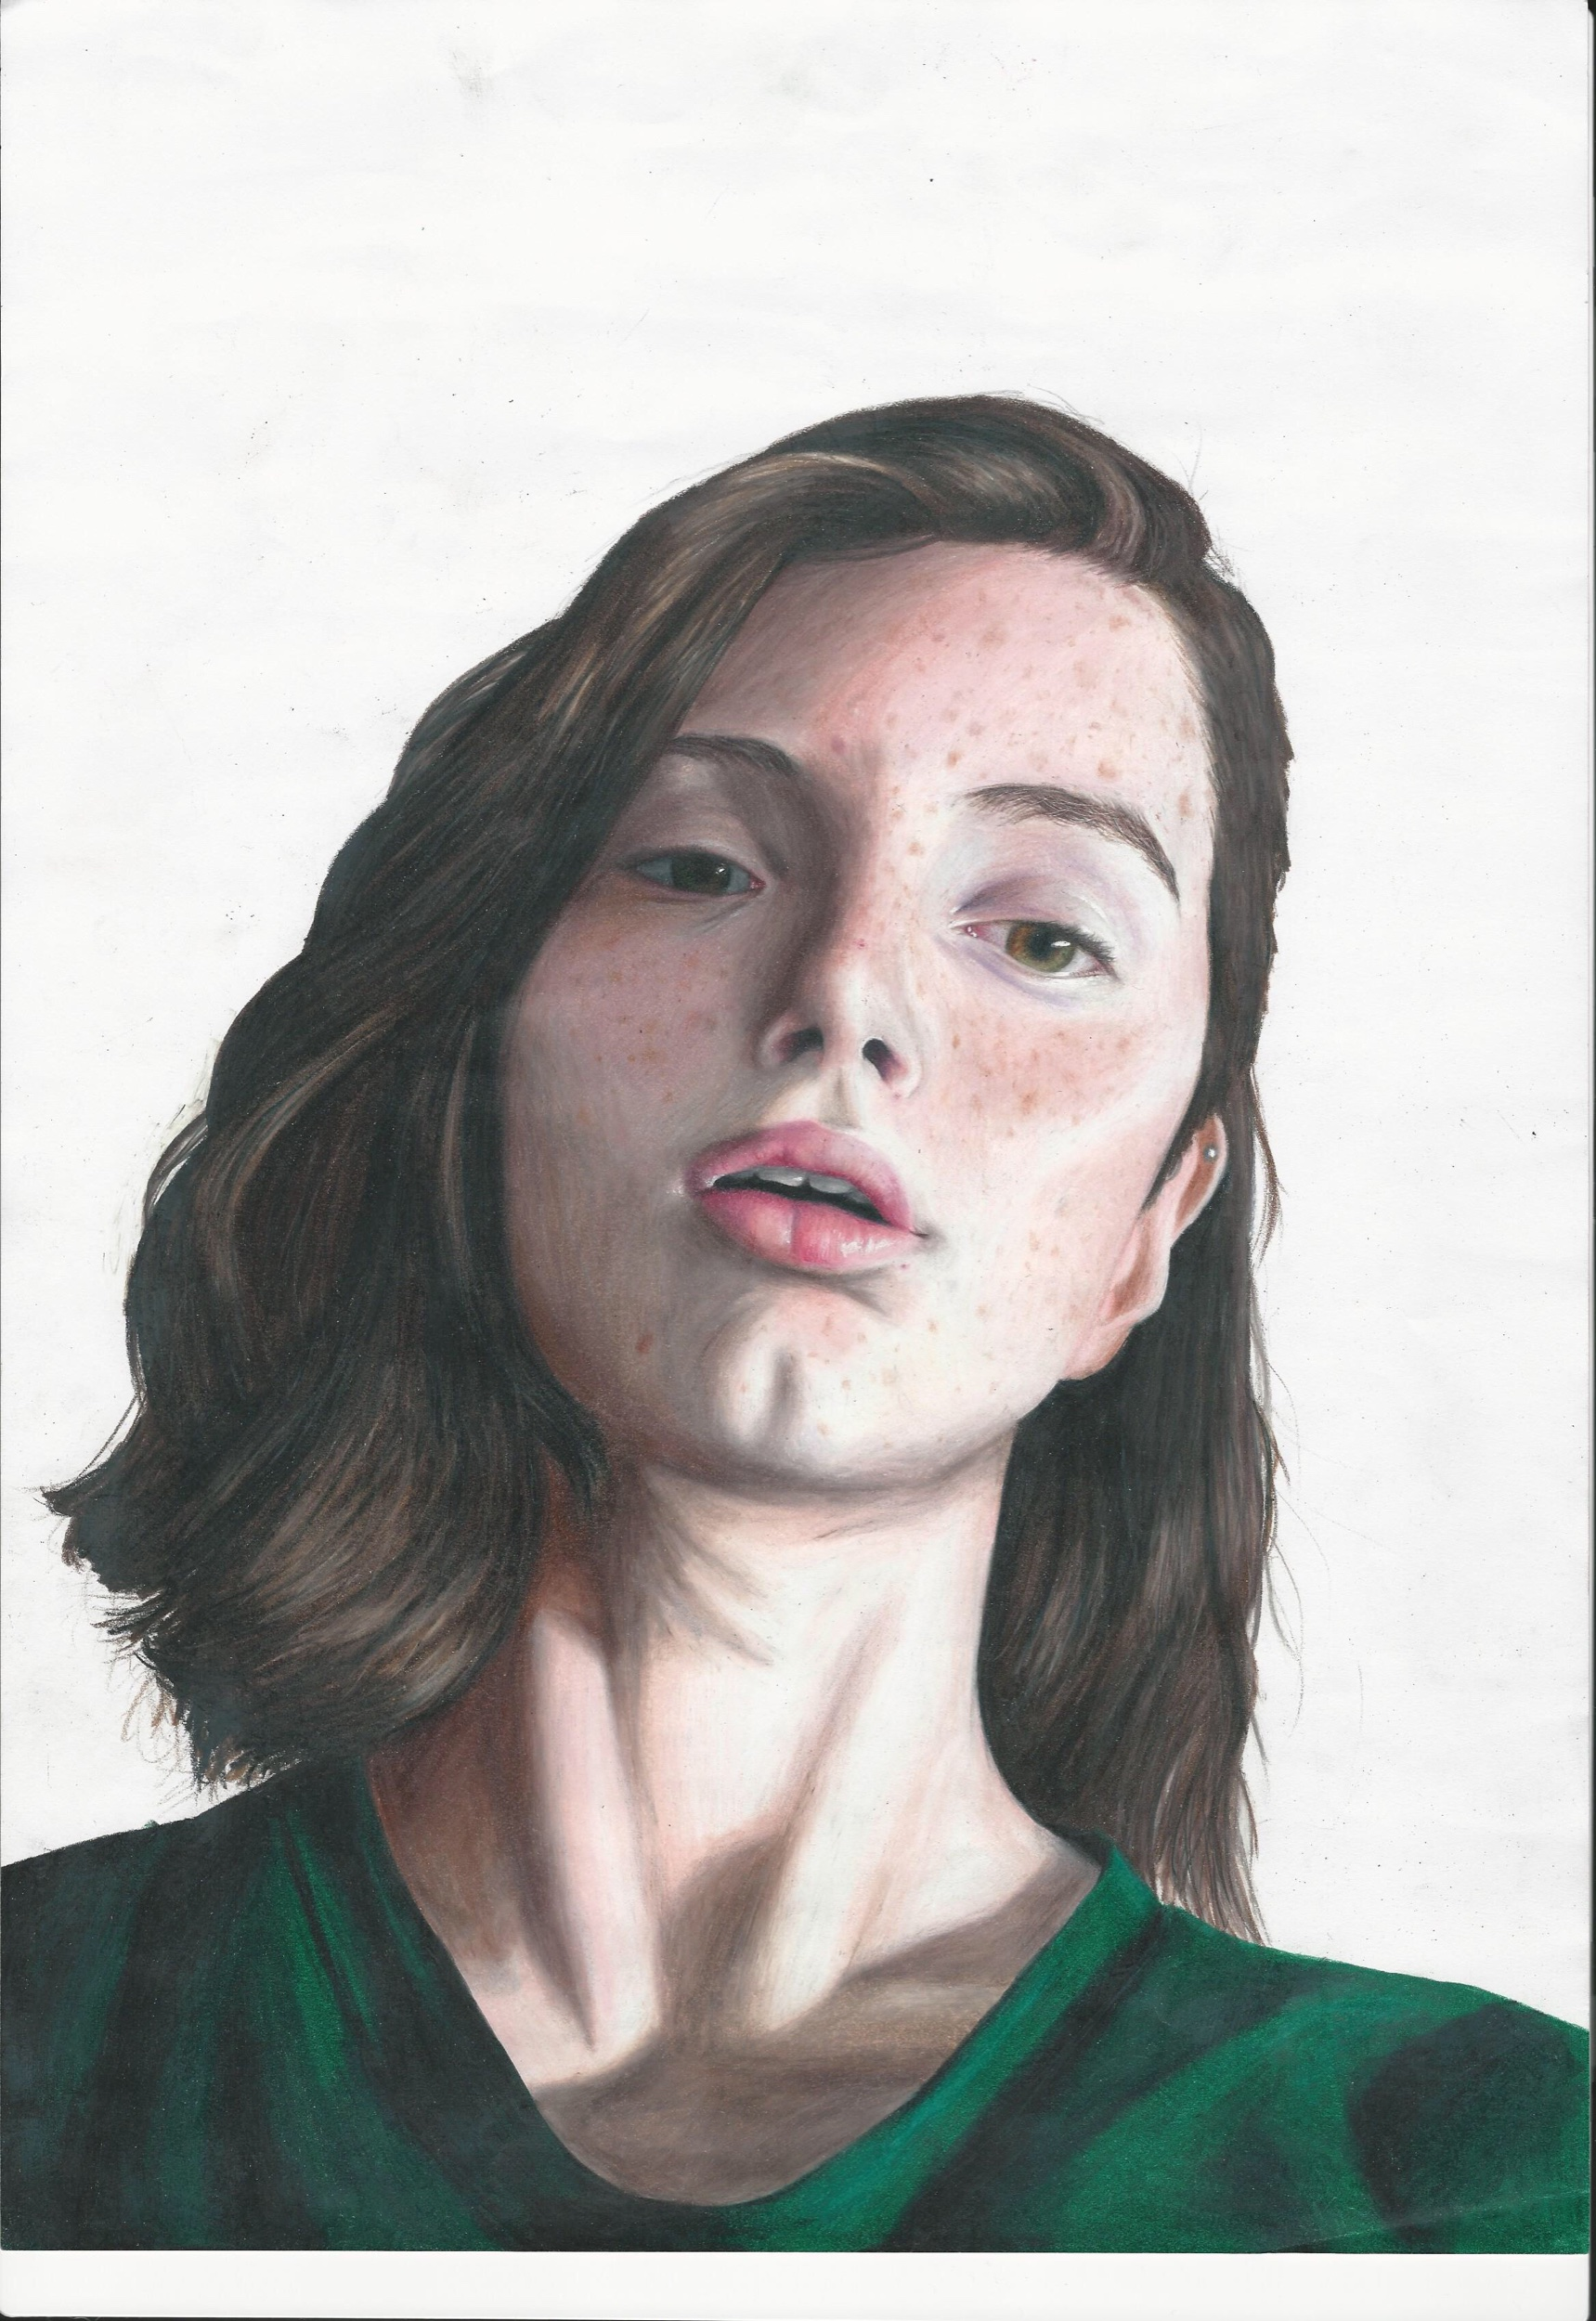 Green Jumper by Tara Neville Moynihan